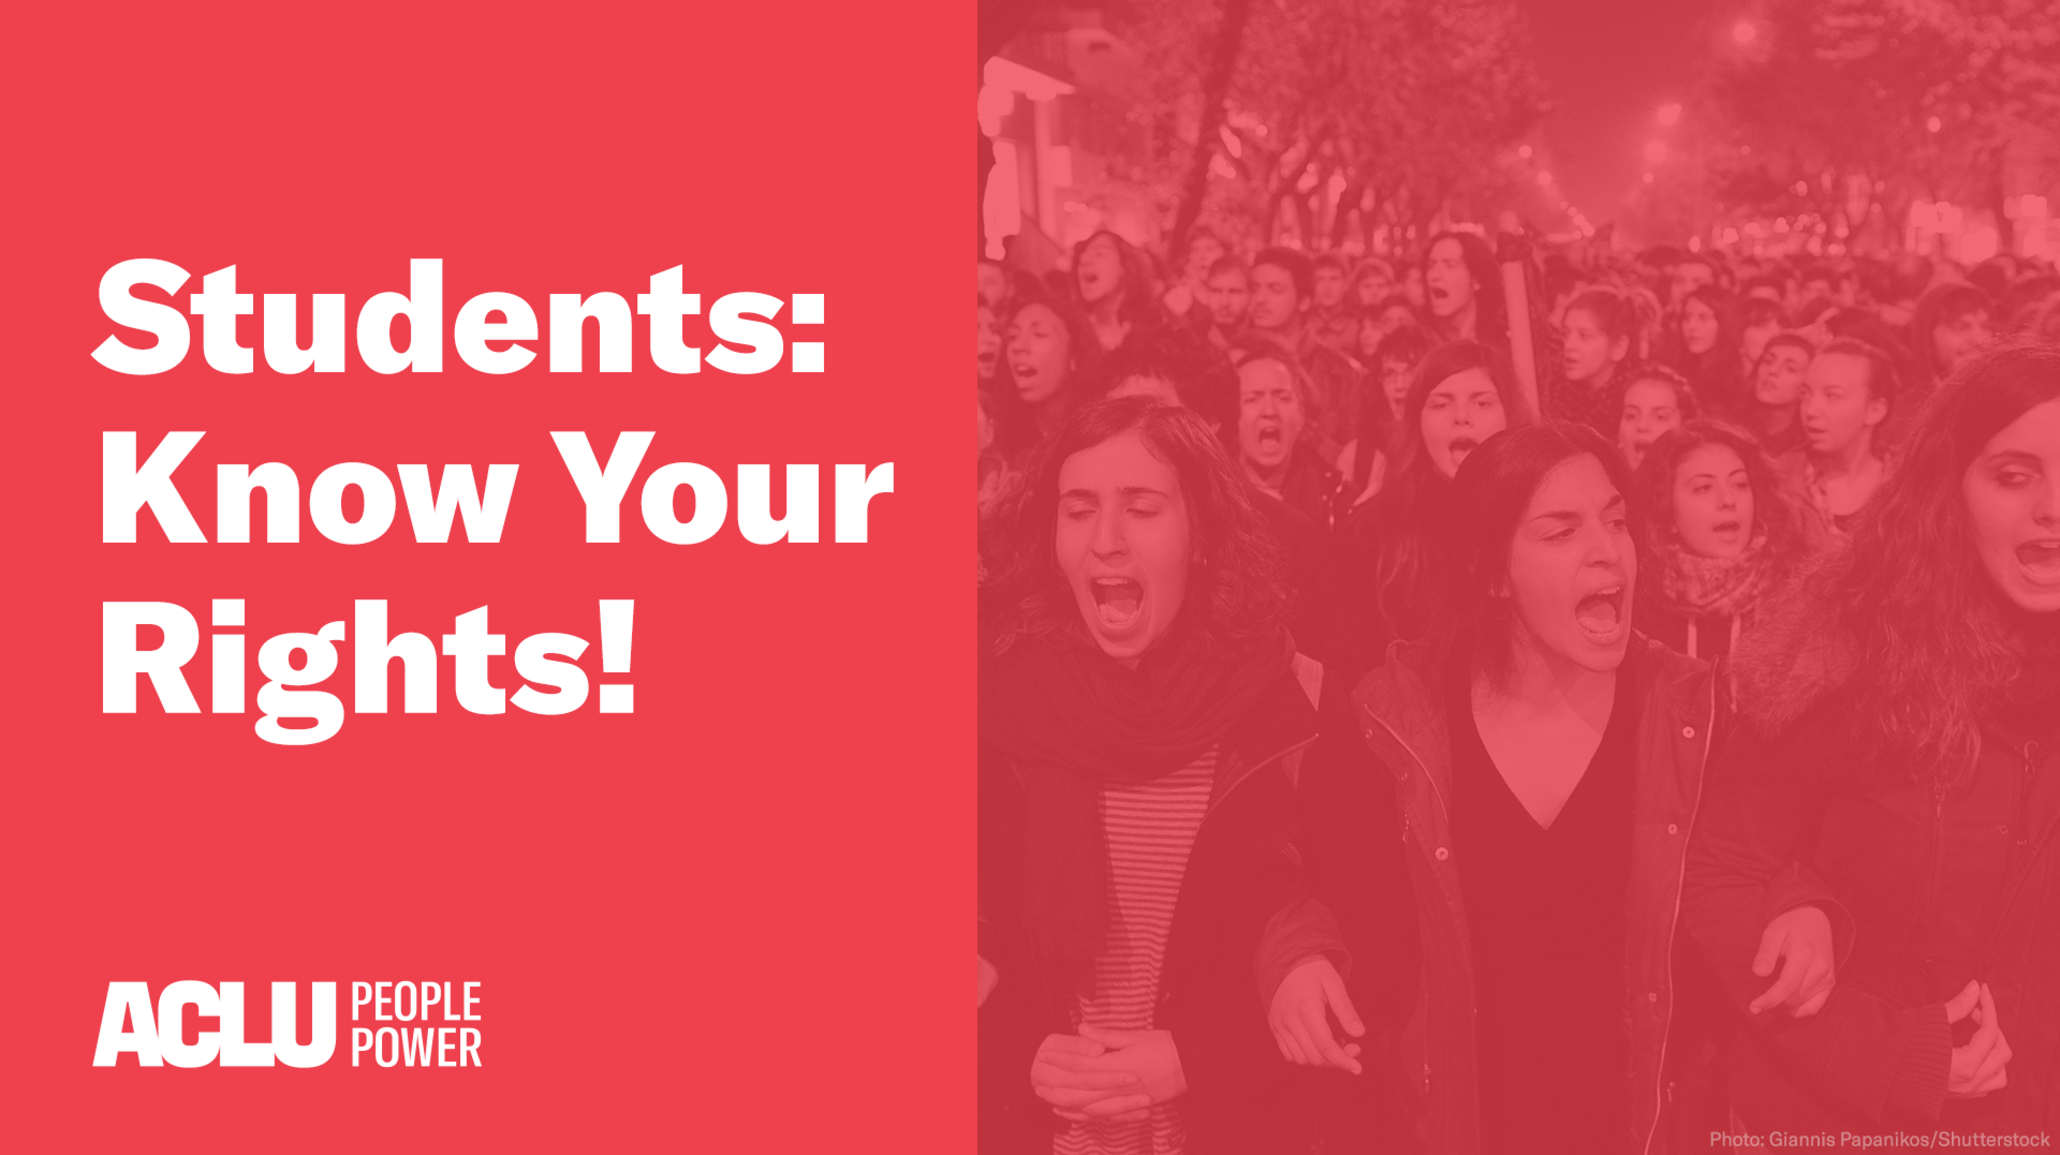 Students Rights Speech Walkouts and Other Protests